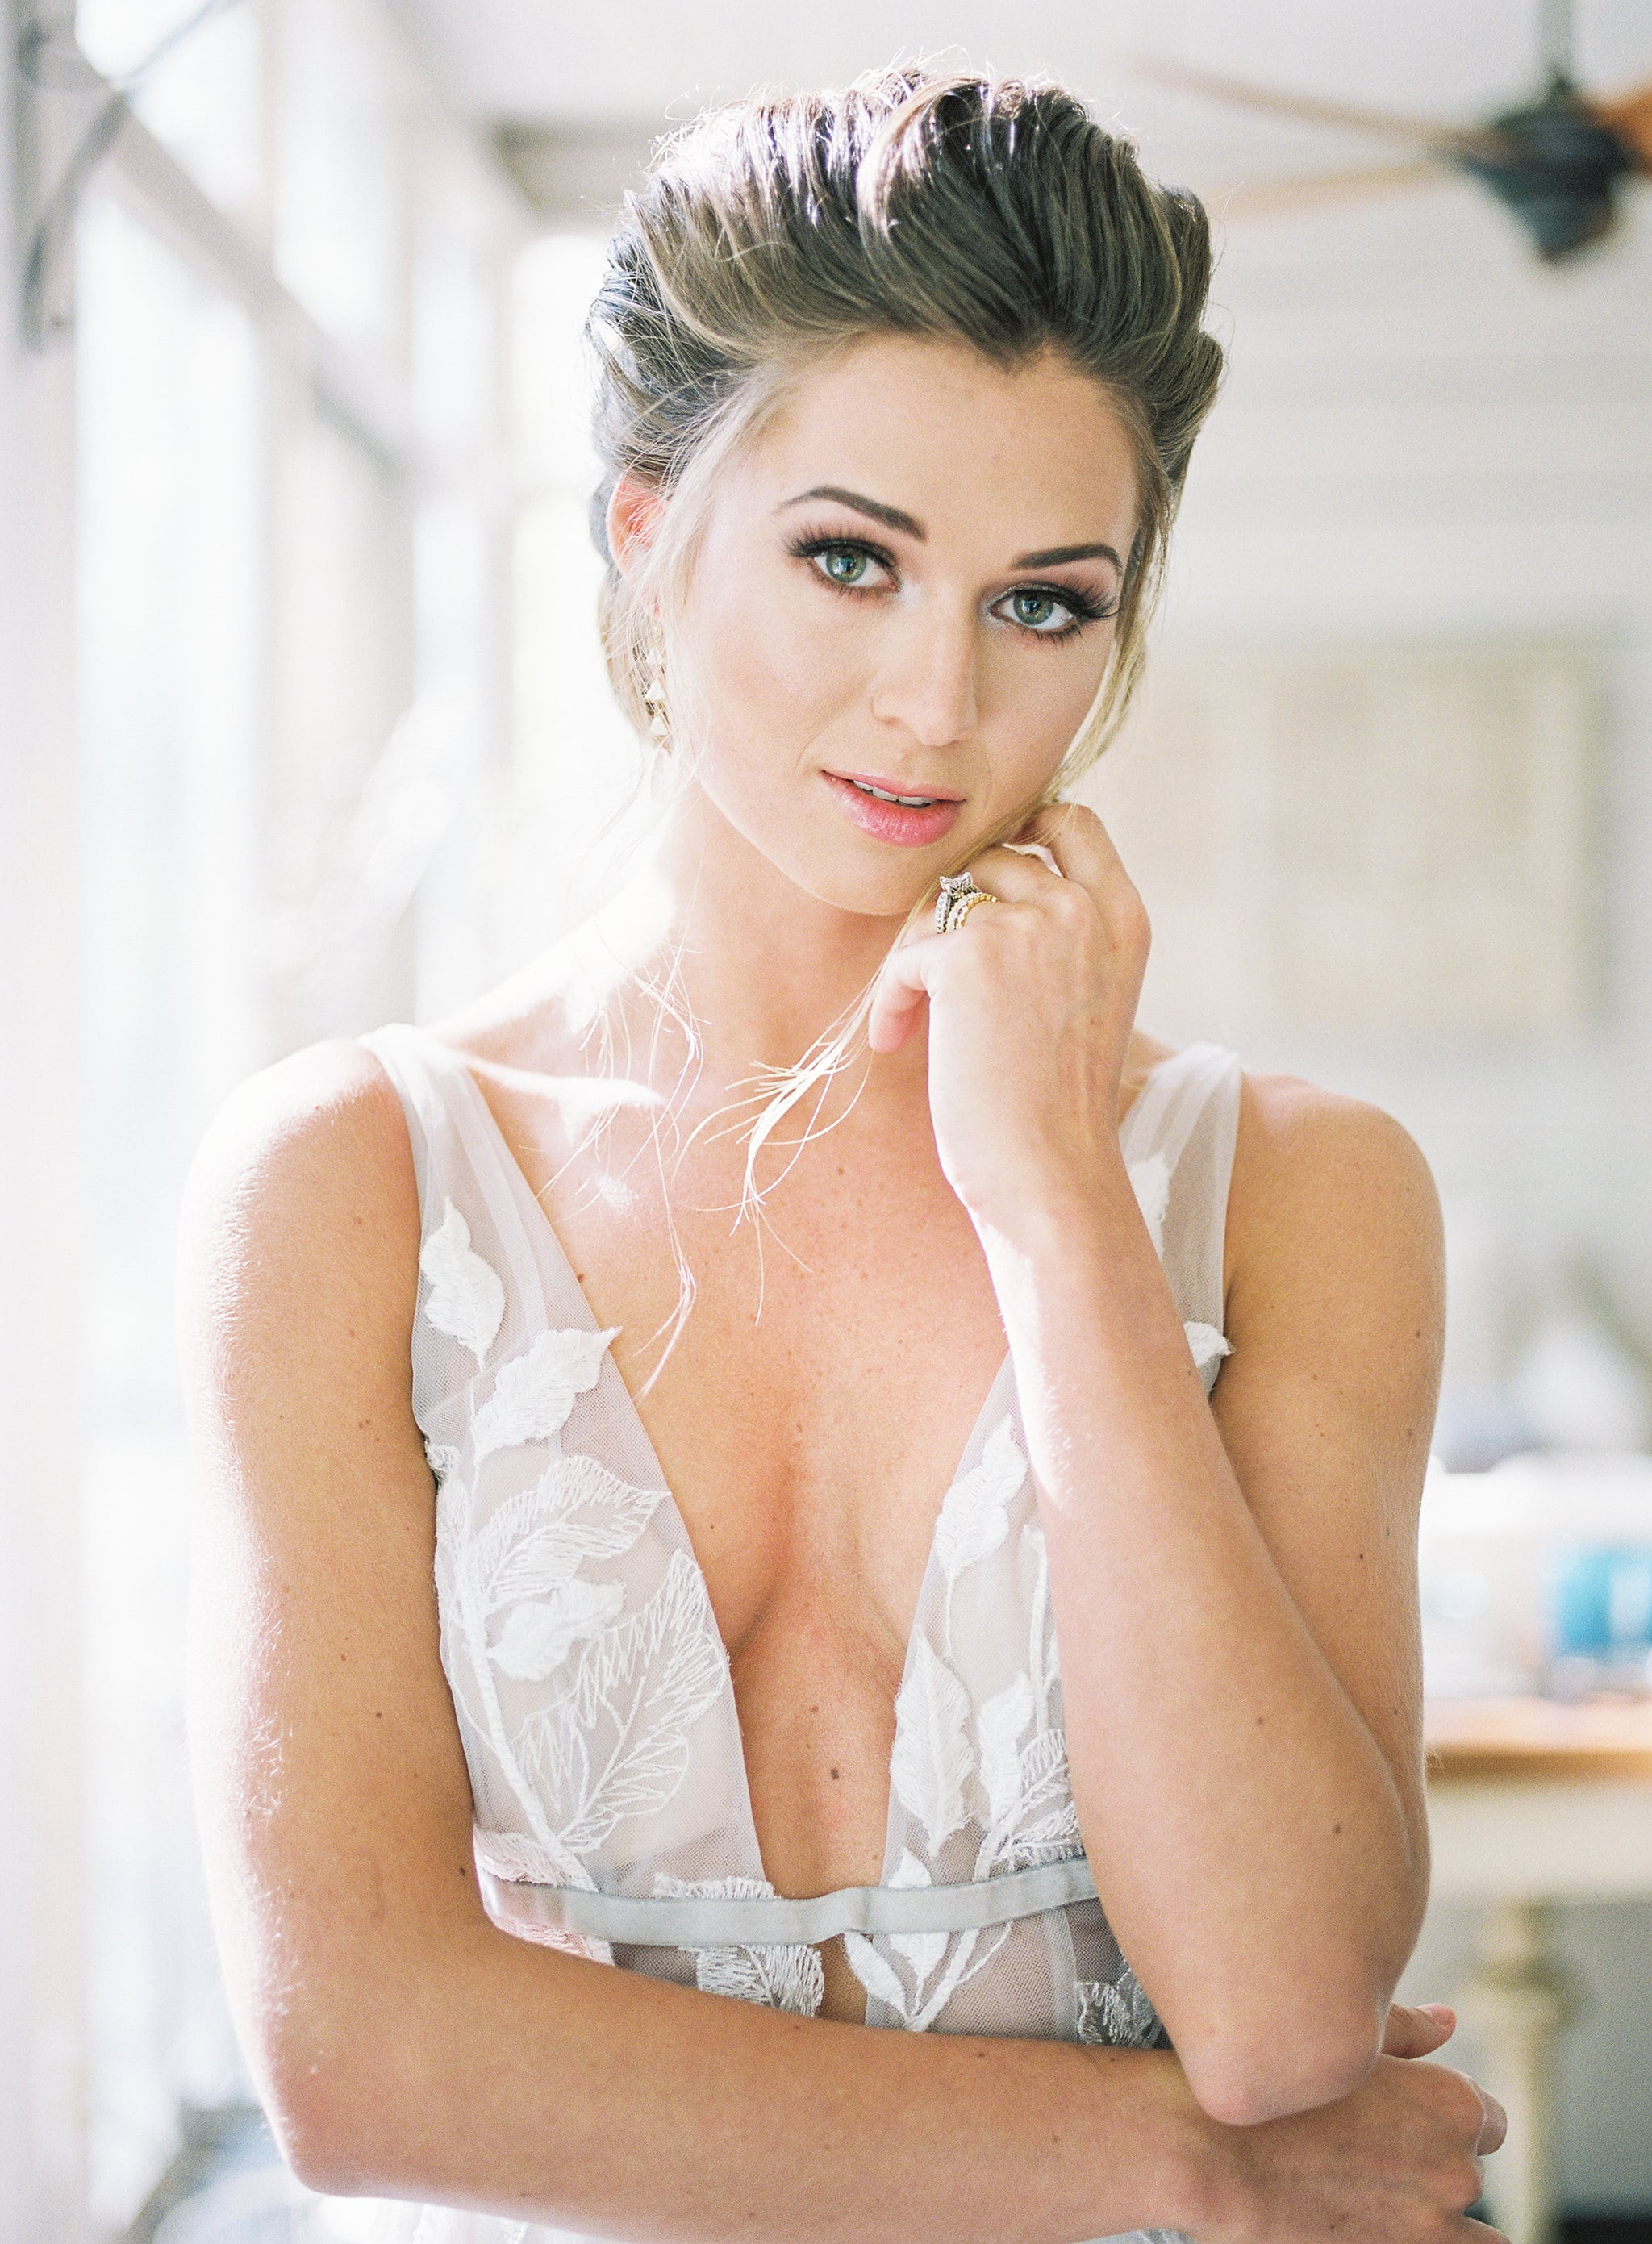 Stunning hair by Katy Barbour and makeup by Jenny Le for a styled shoot at Tipsy Goat Estate captured by Sunshower Photography